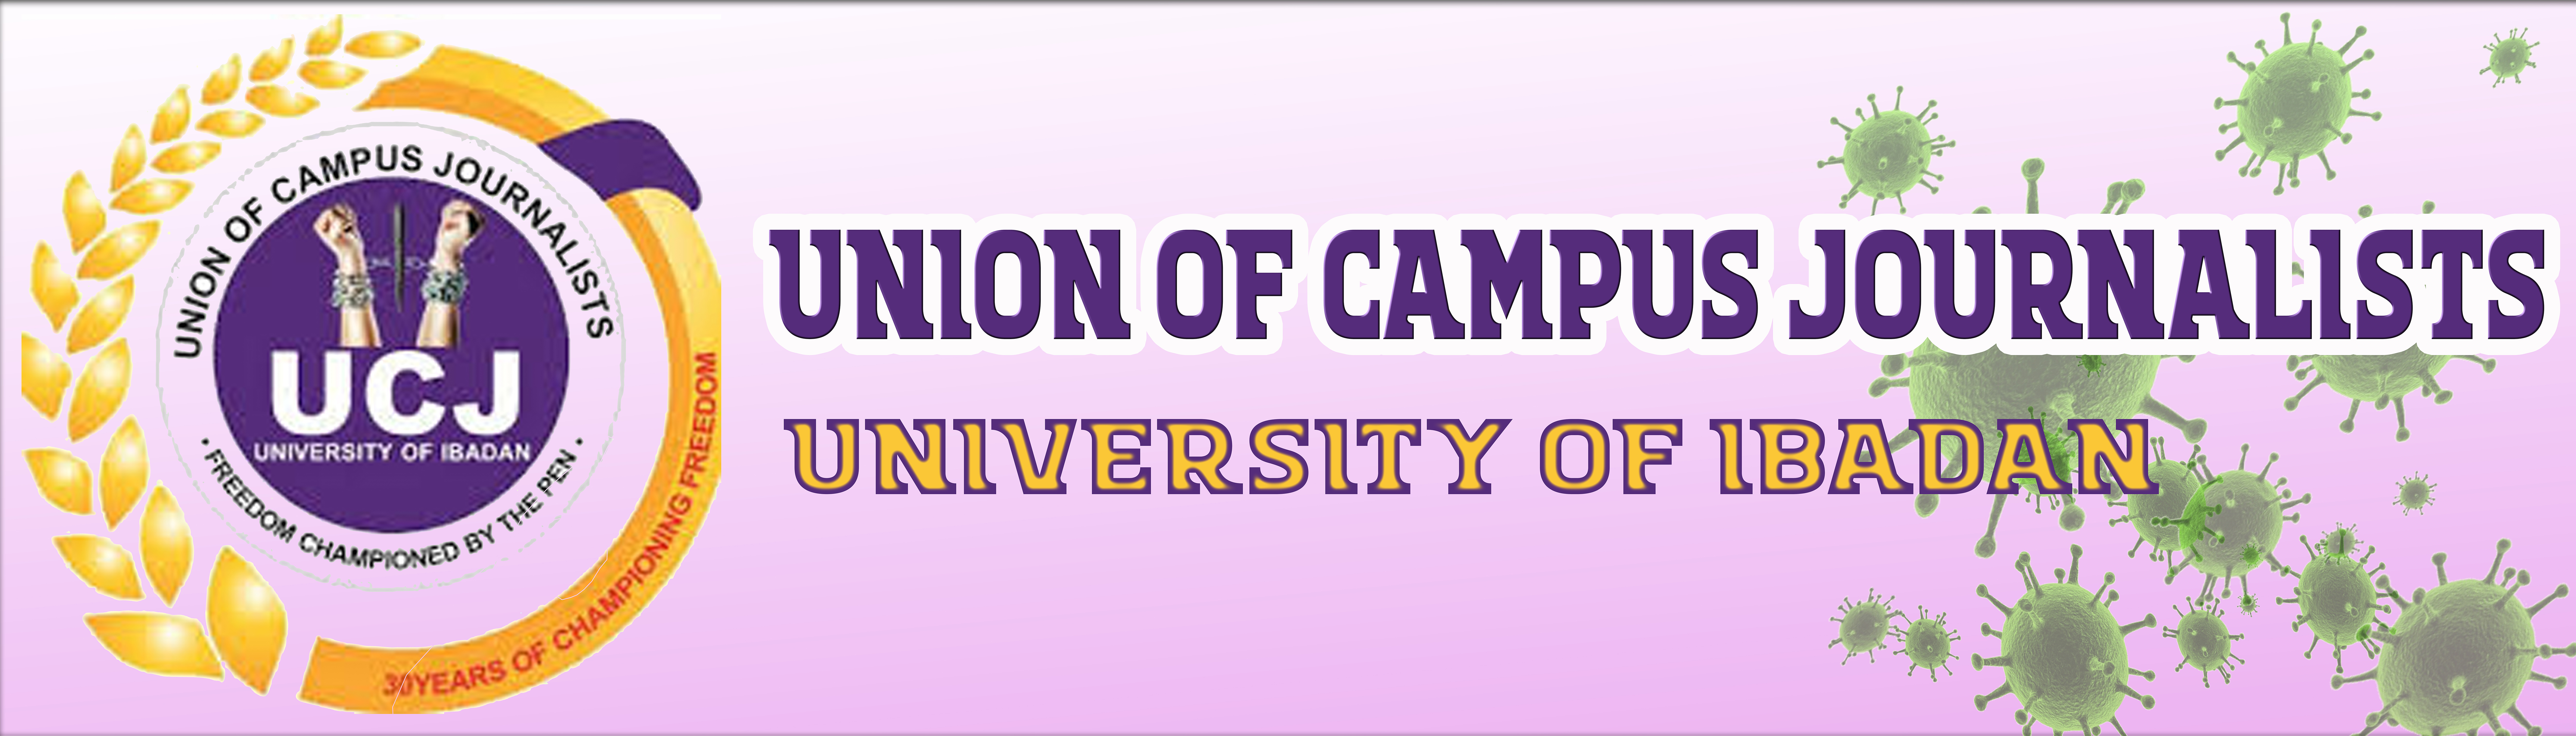 UNION OF CAMPUS JOURNALISTS-University of Ibadan